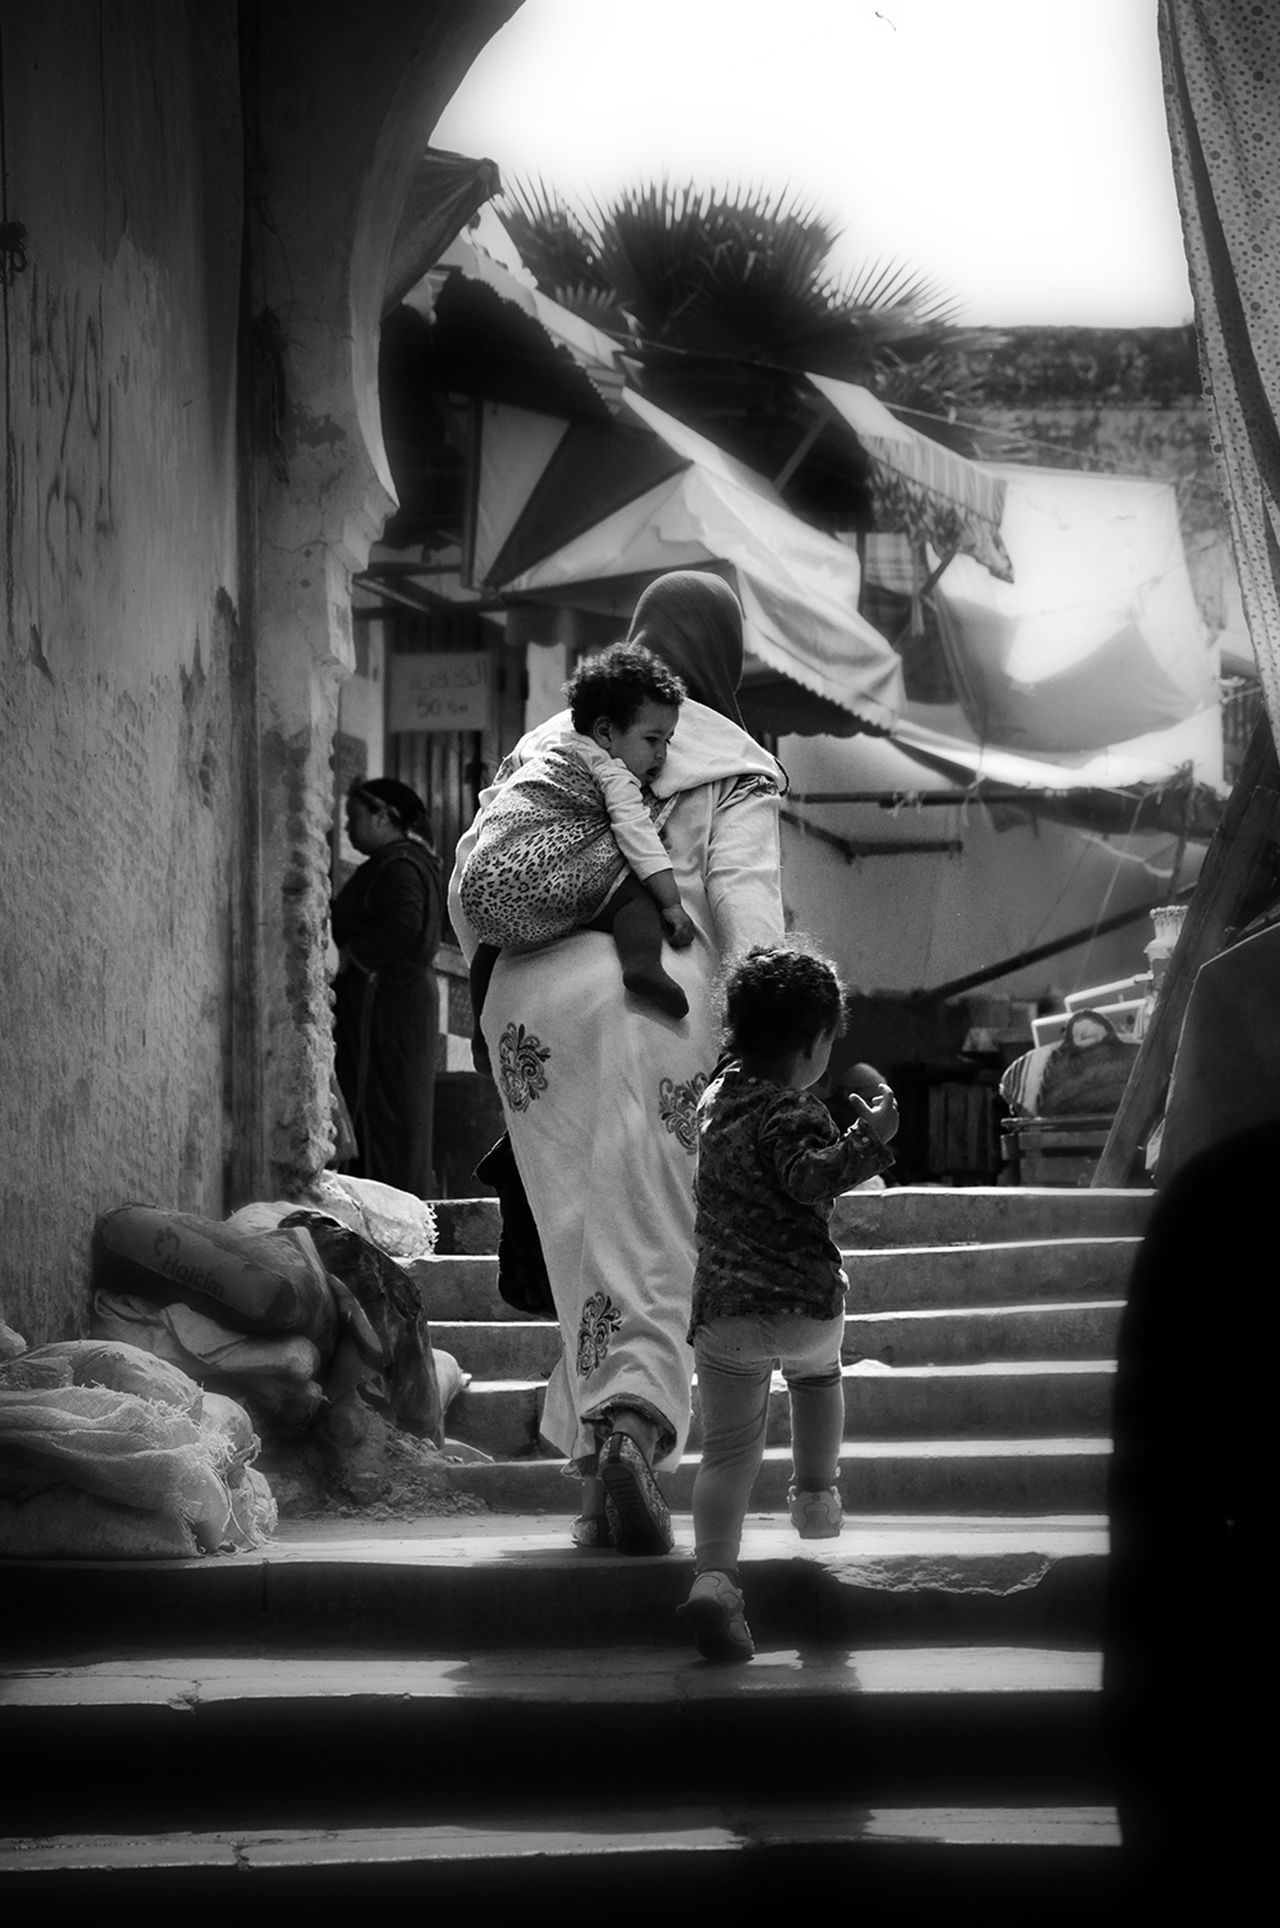 Women Around The World Women Who Inspire You Motherhood Streetphotography Motherhood Moments Togetherness Women Of EyeEm Woman Power Blackandwhite Photography Local Culture Childhood Mother & Daughter Daily Life Real People Blackandwhite - Medina De Fez Fez Morocco Africa